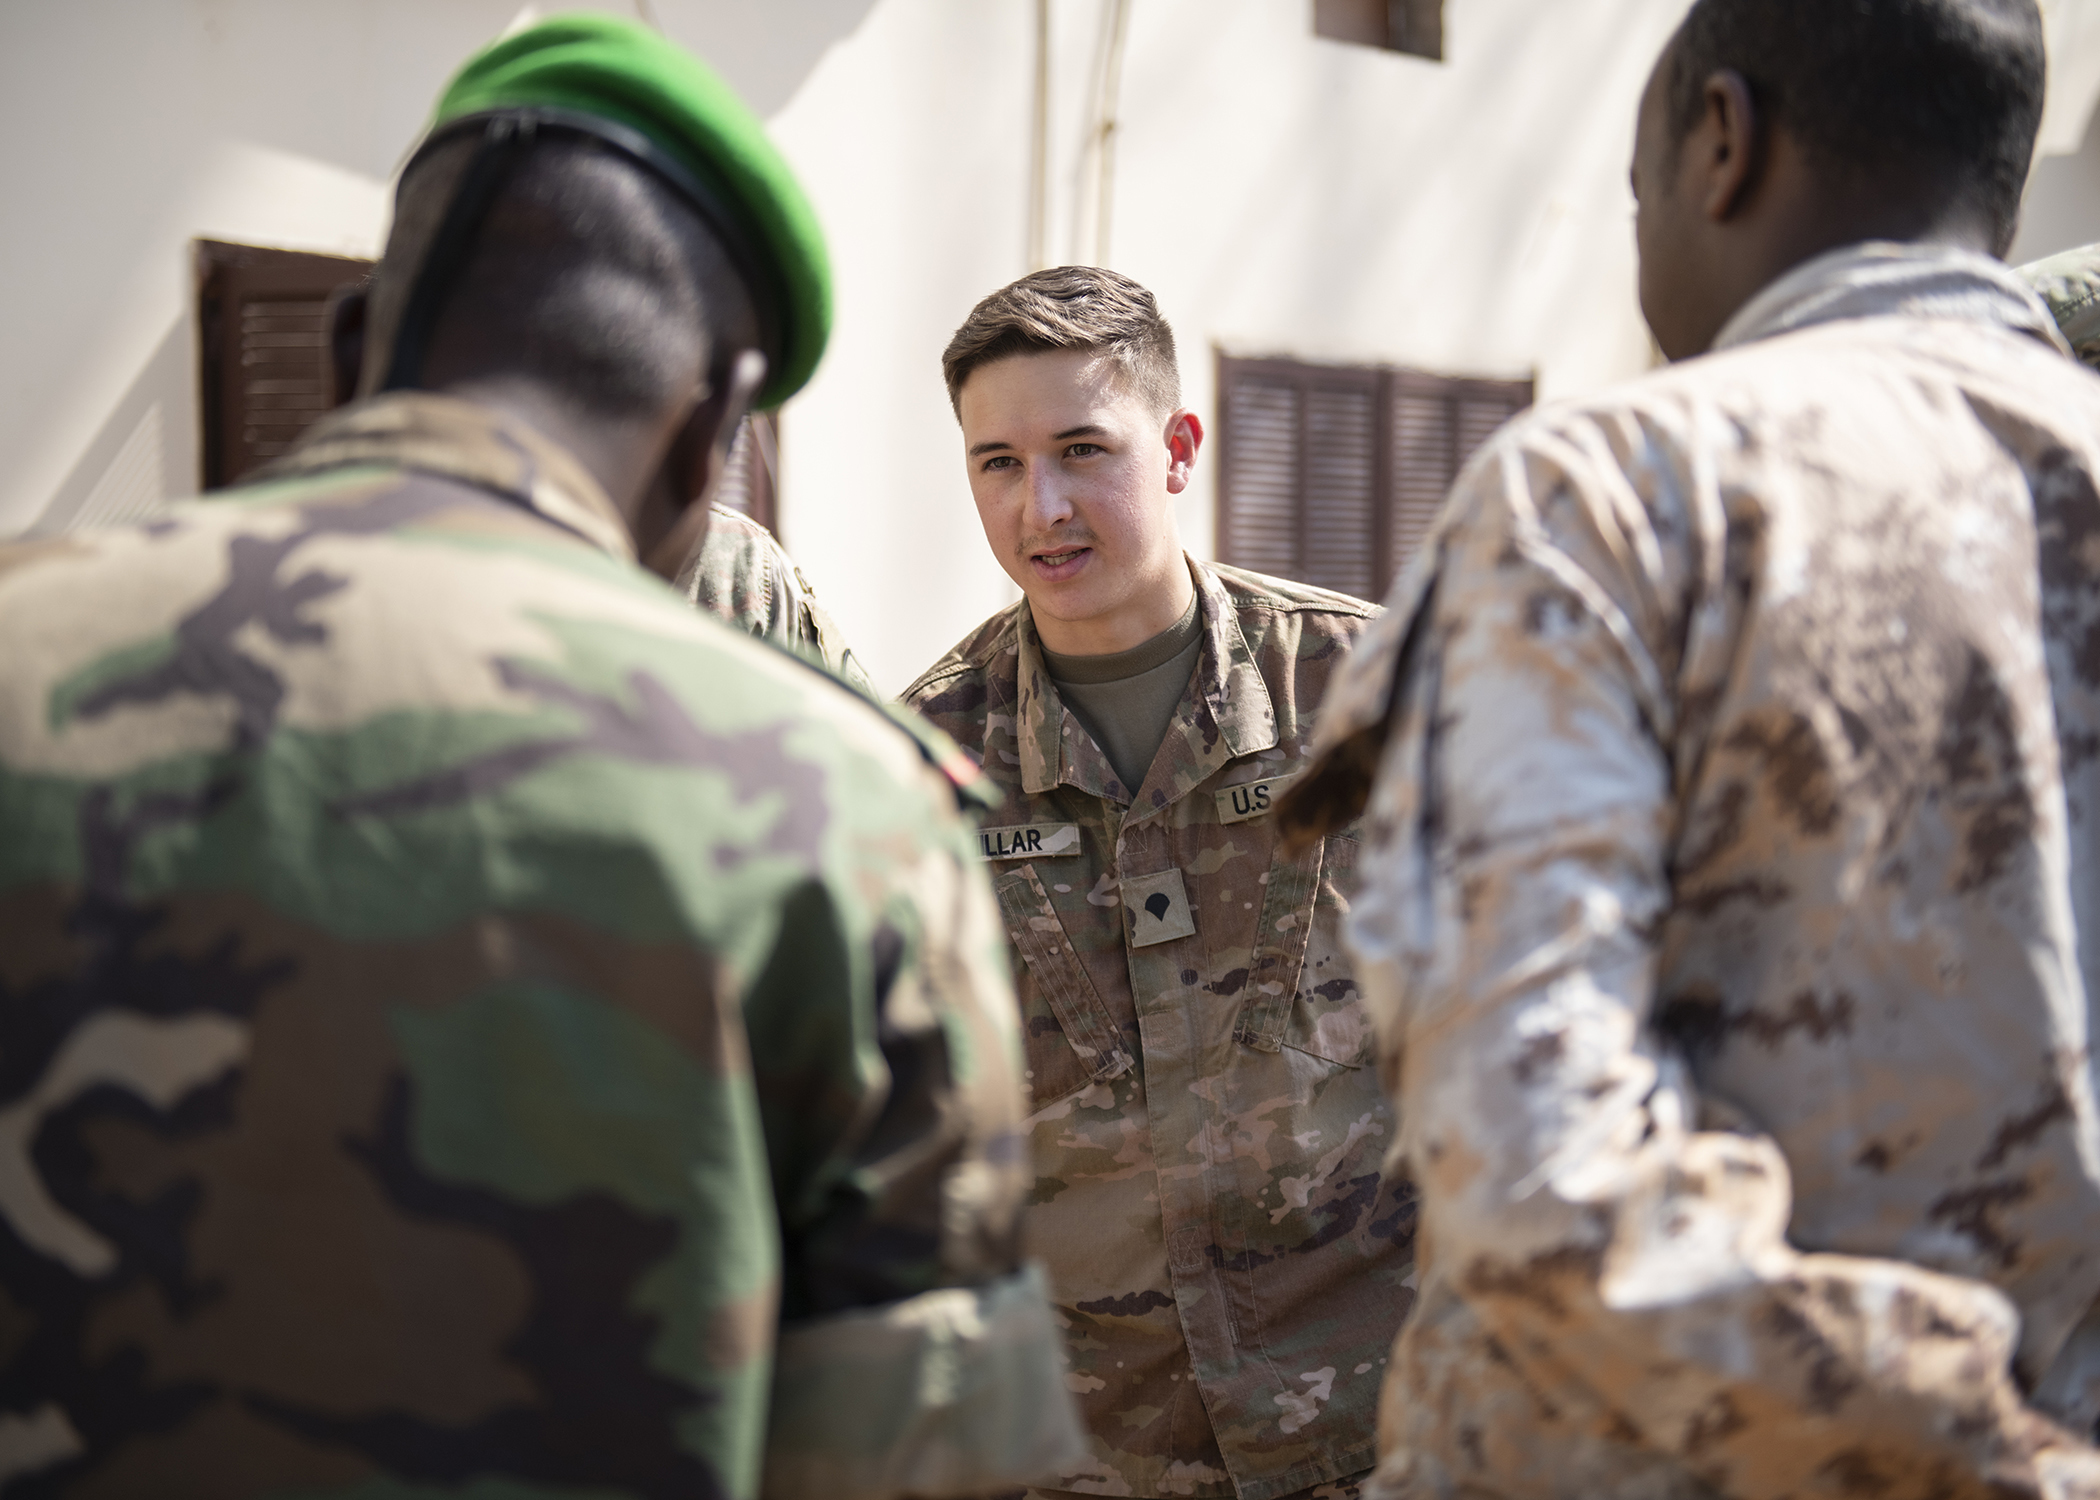 U.S. Army Spc. Bretton Millar, assigned to the Combined Joint Task Force-Horn of Africa communications directorate, explains the importance of leveling a satellite unit during an Africa Data Sharing Network (ADSN), version two, information exchange with Djibouti Army (FAD) soldiers at FAD Headquarters, Djibouti, Dec. 26, 2018. The ADSN works as an internal network that the African Union Mission in Somalia troop-contributing countries can use to communicate and share information amongst each other. (U.S. Air Force photo by Tech. Sgt. Shawn Nickel)